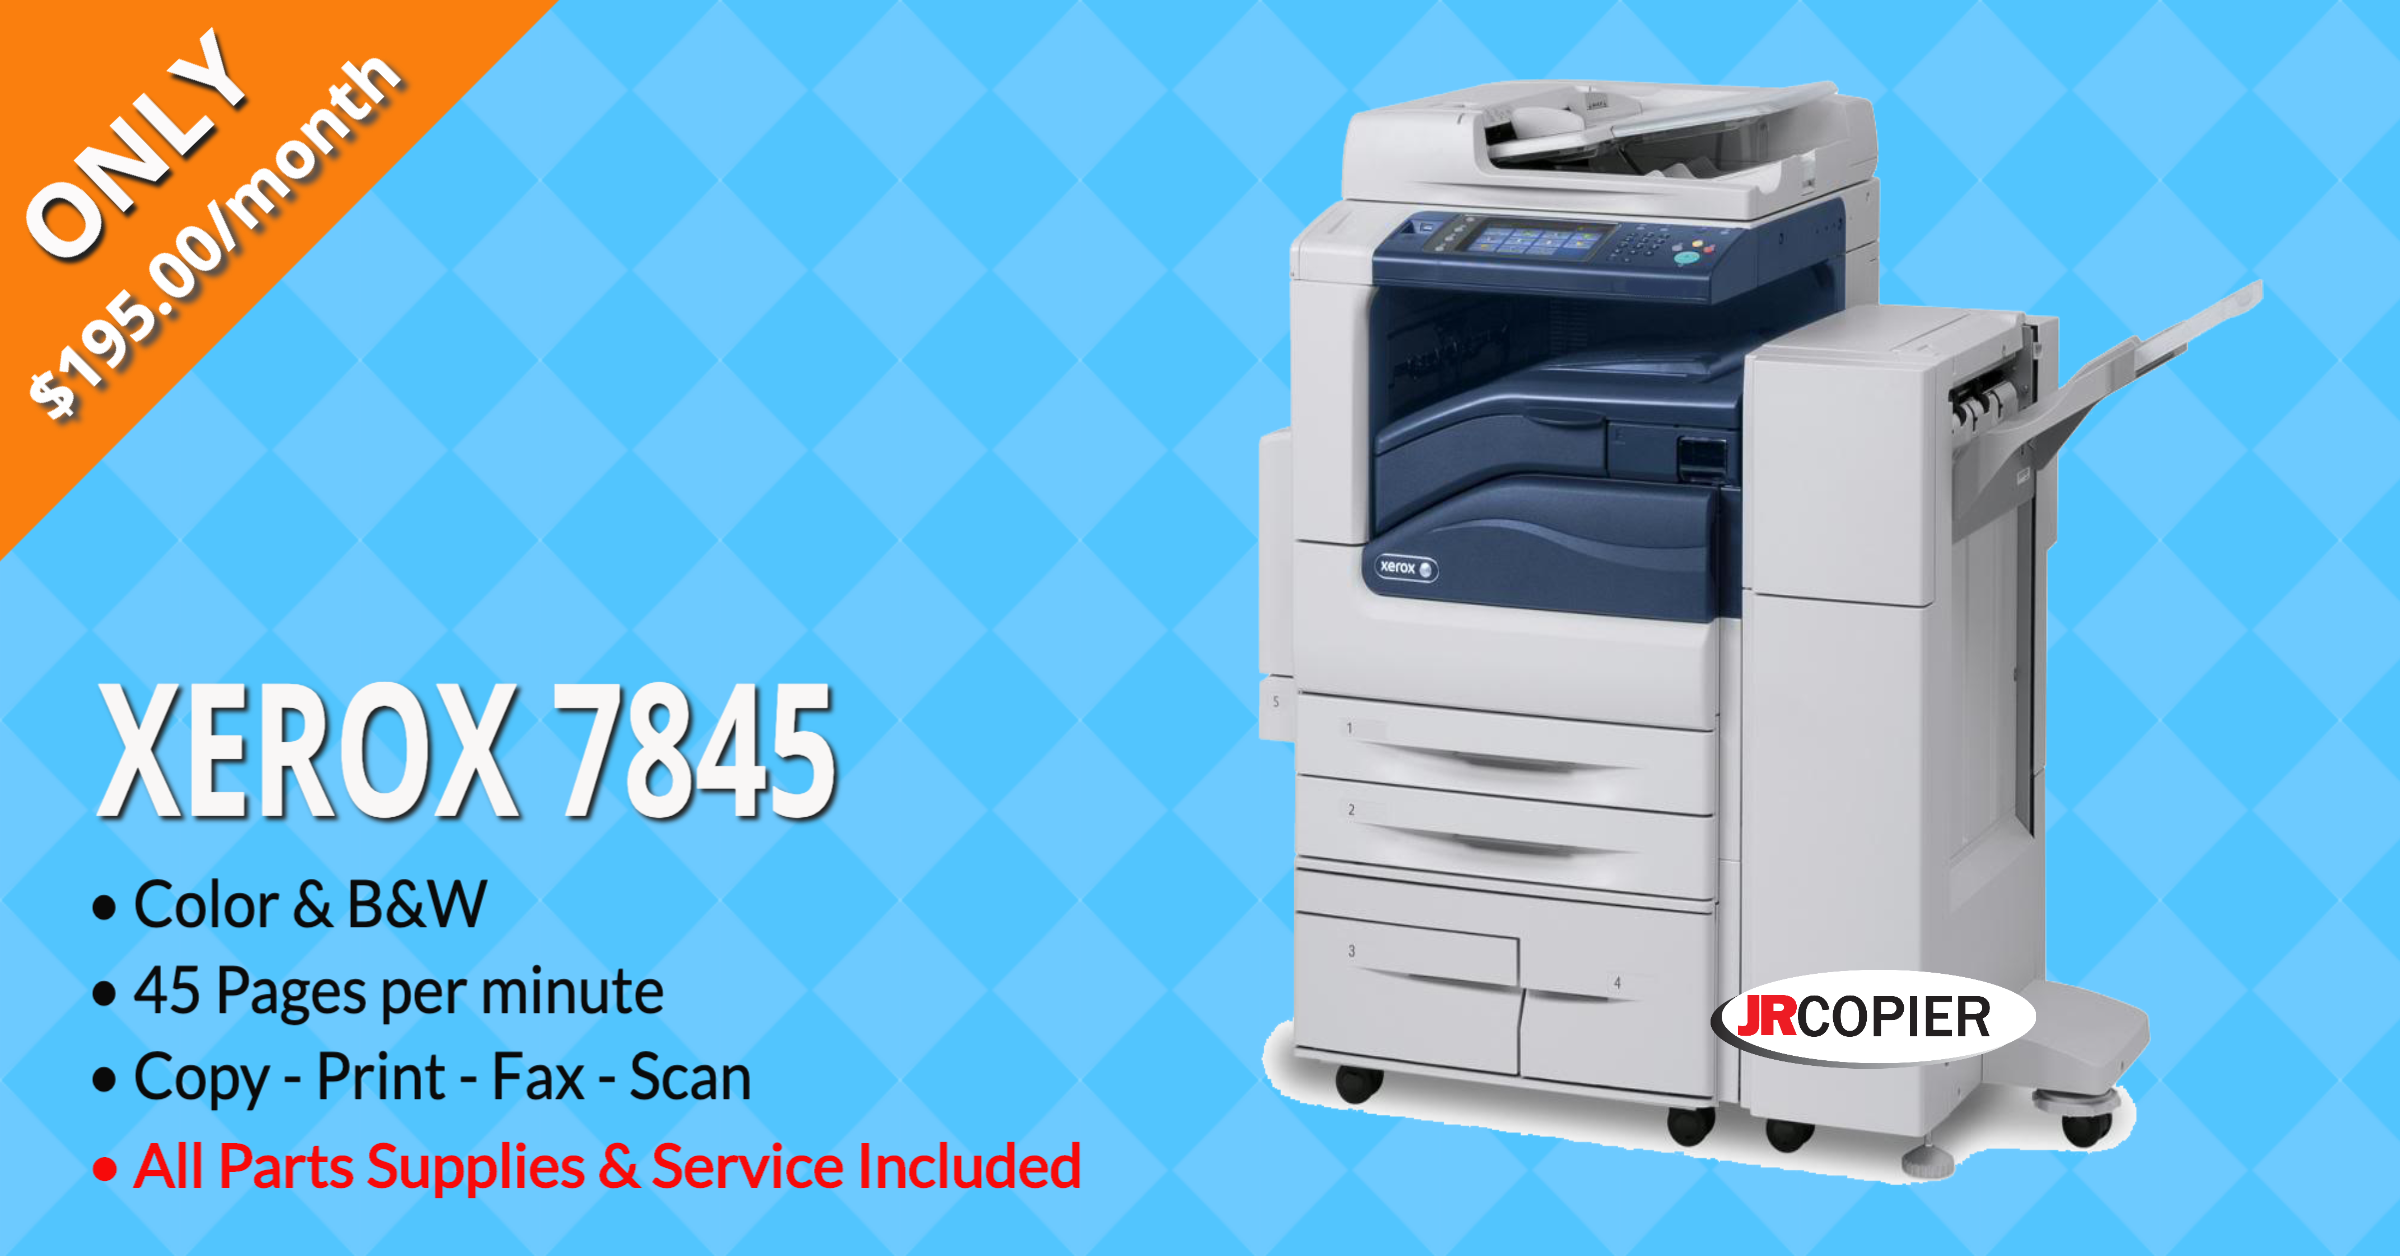 Printer Rental Services 60041, 60051, 60073